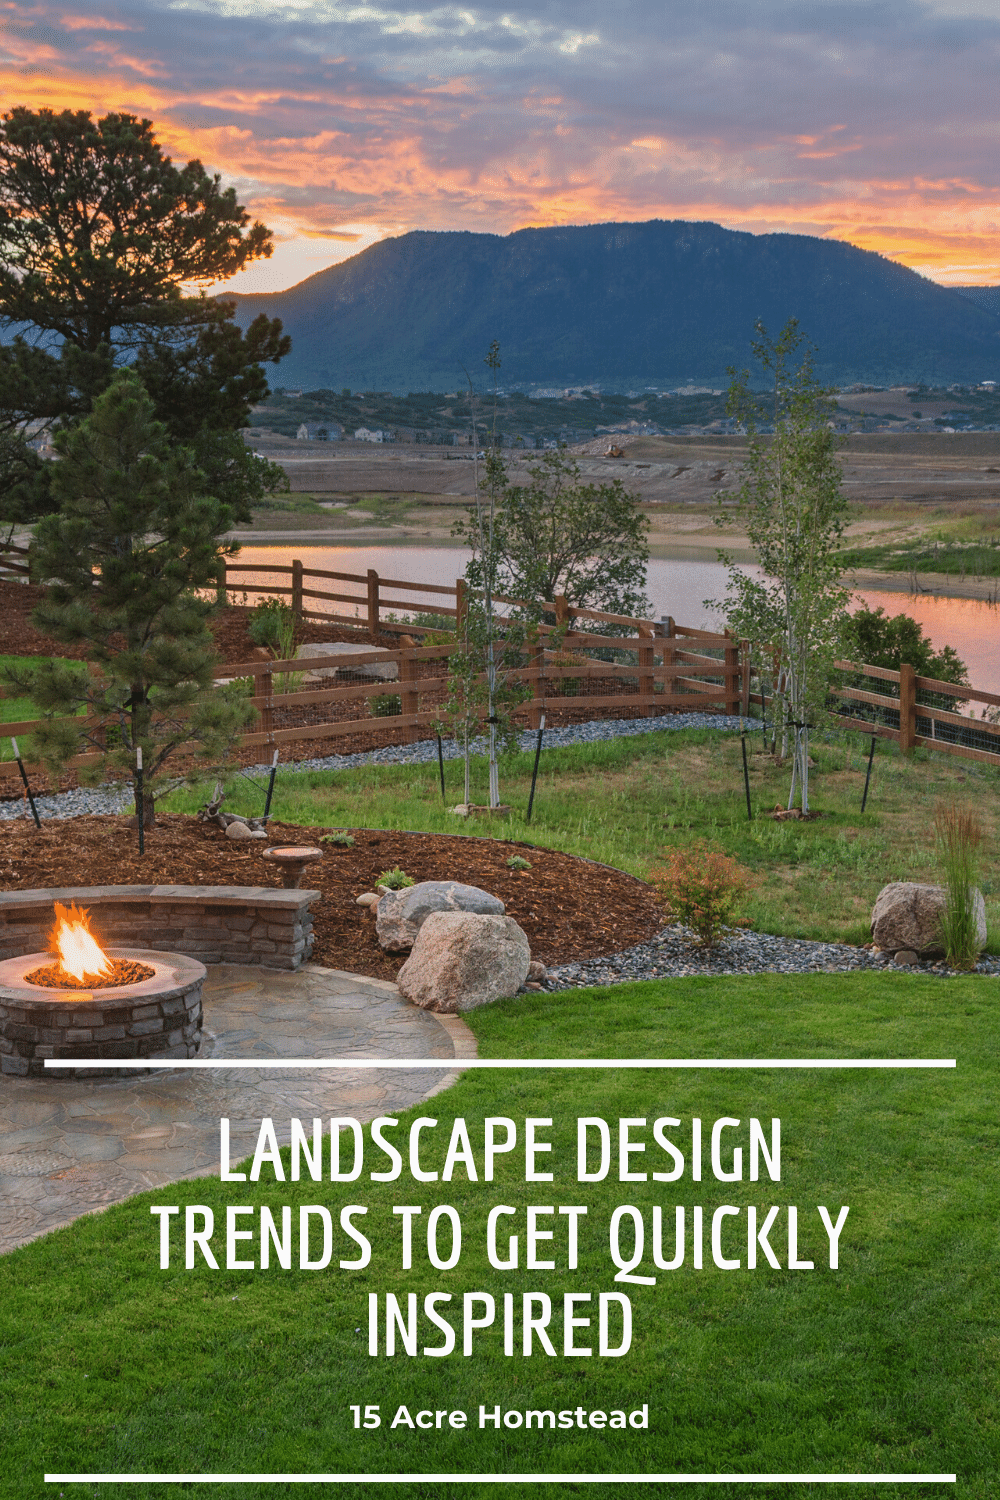 Find inspiration for your home with these landscape design trends.